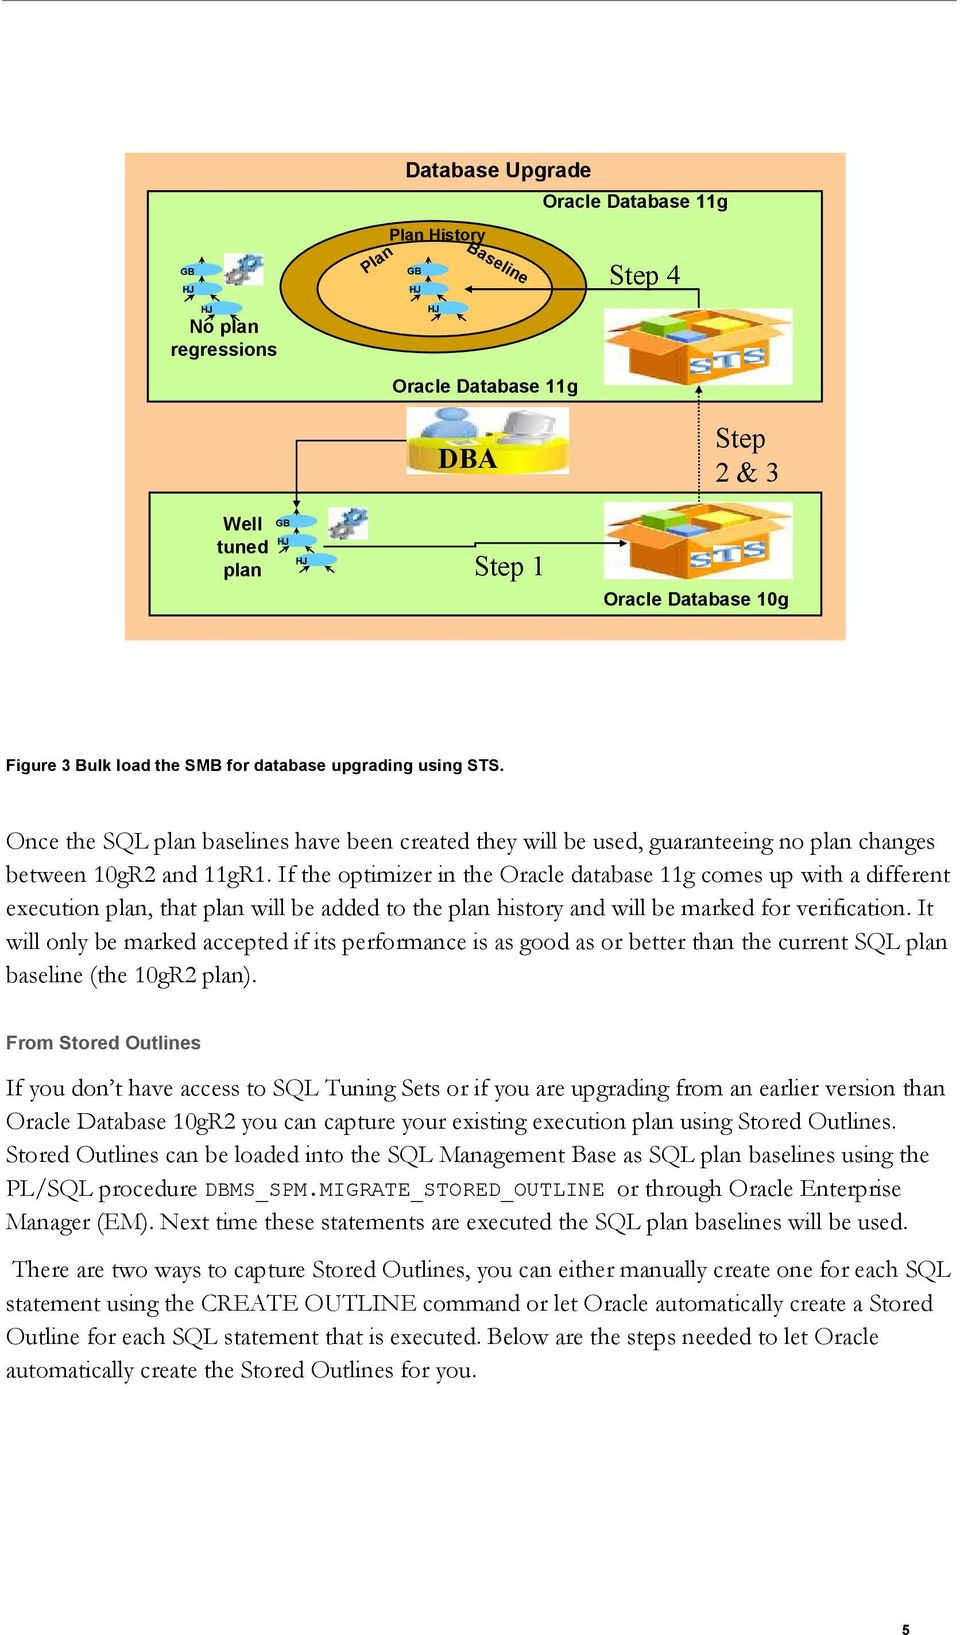 If the optimizer in the Oracle database 11g comes up with a different execution plan, that plan will be added to the plan history and will be marked for verification.